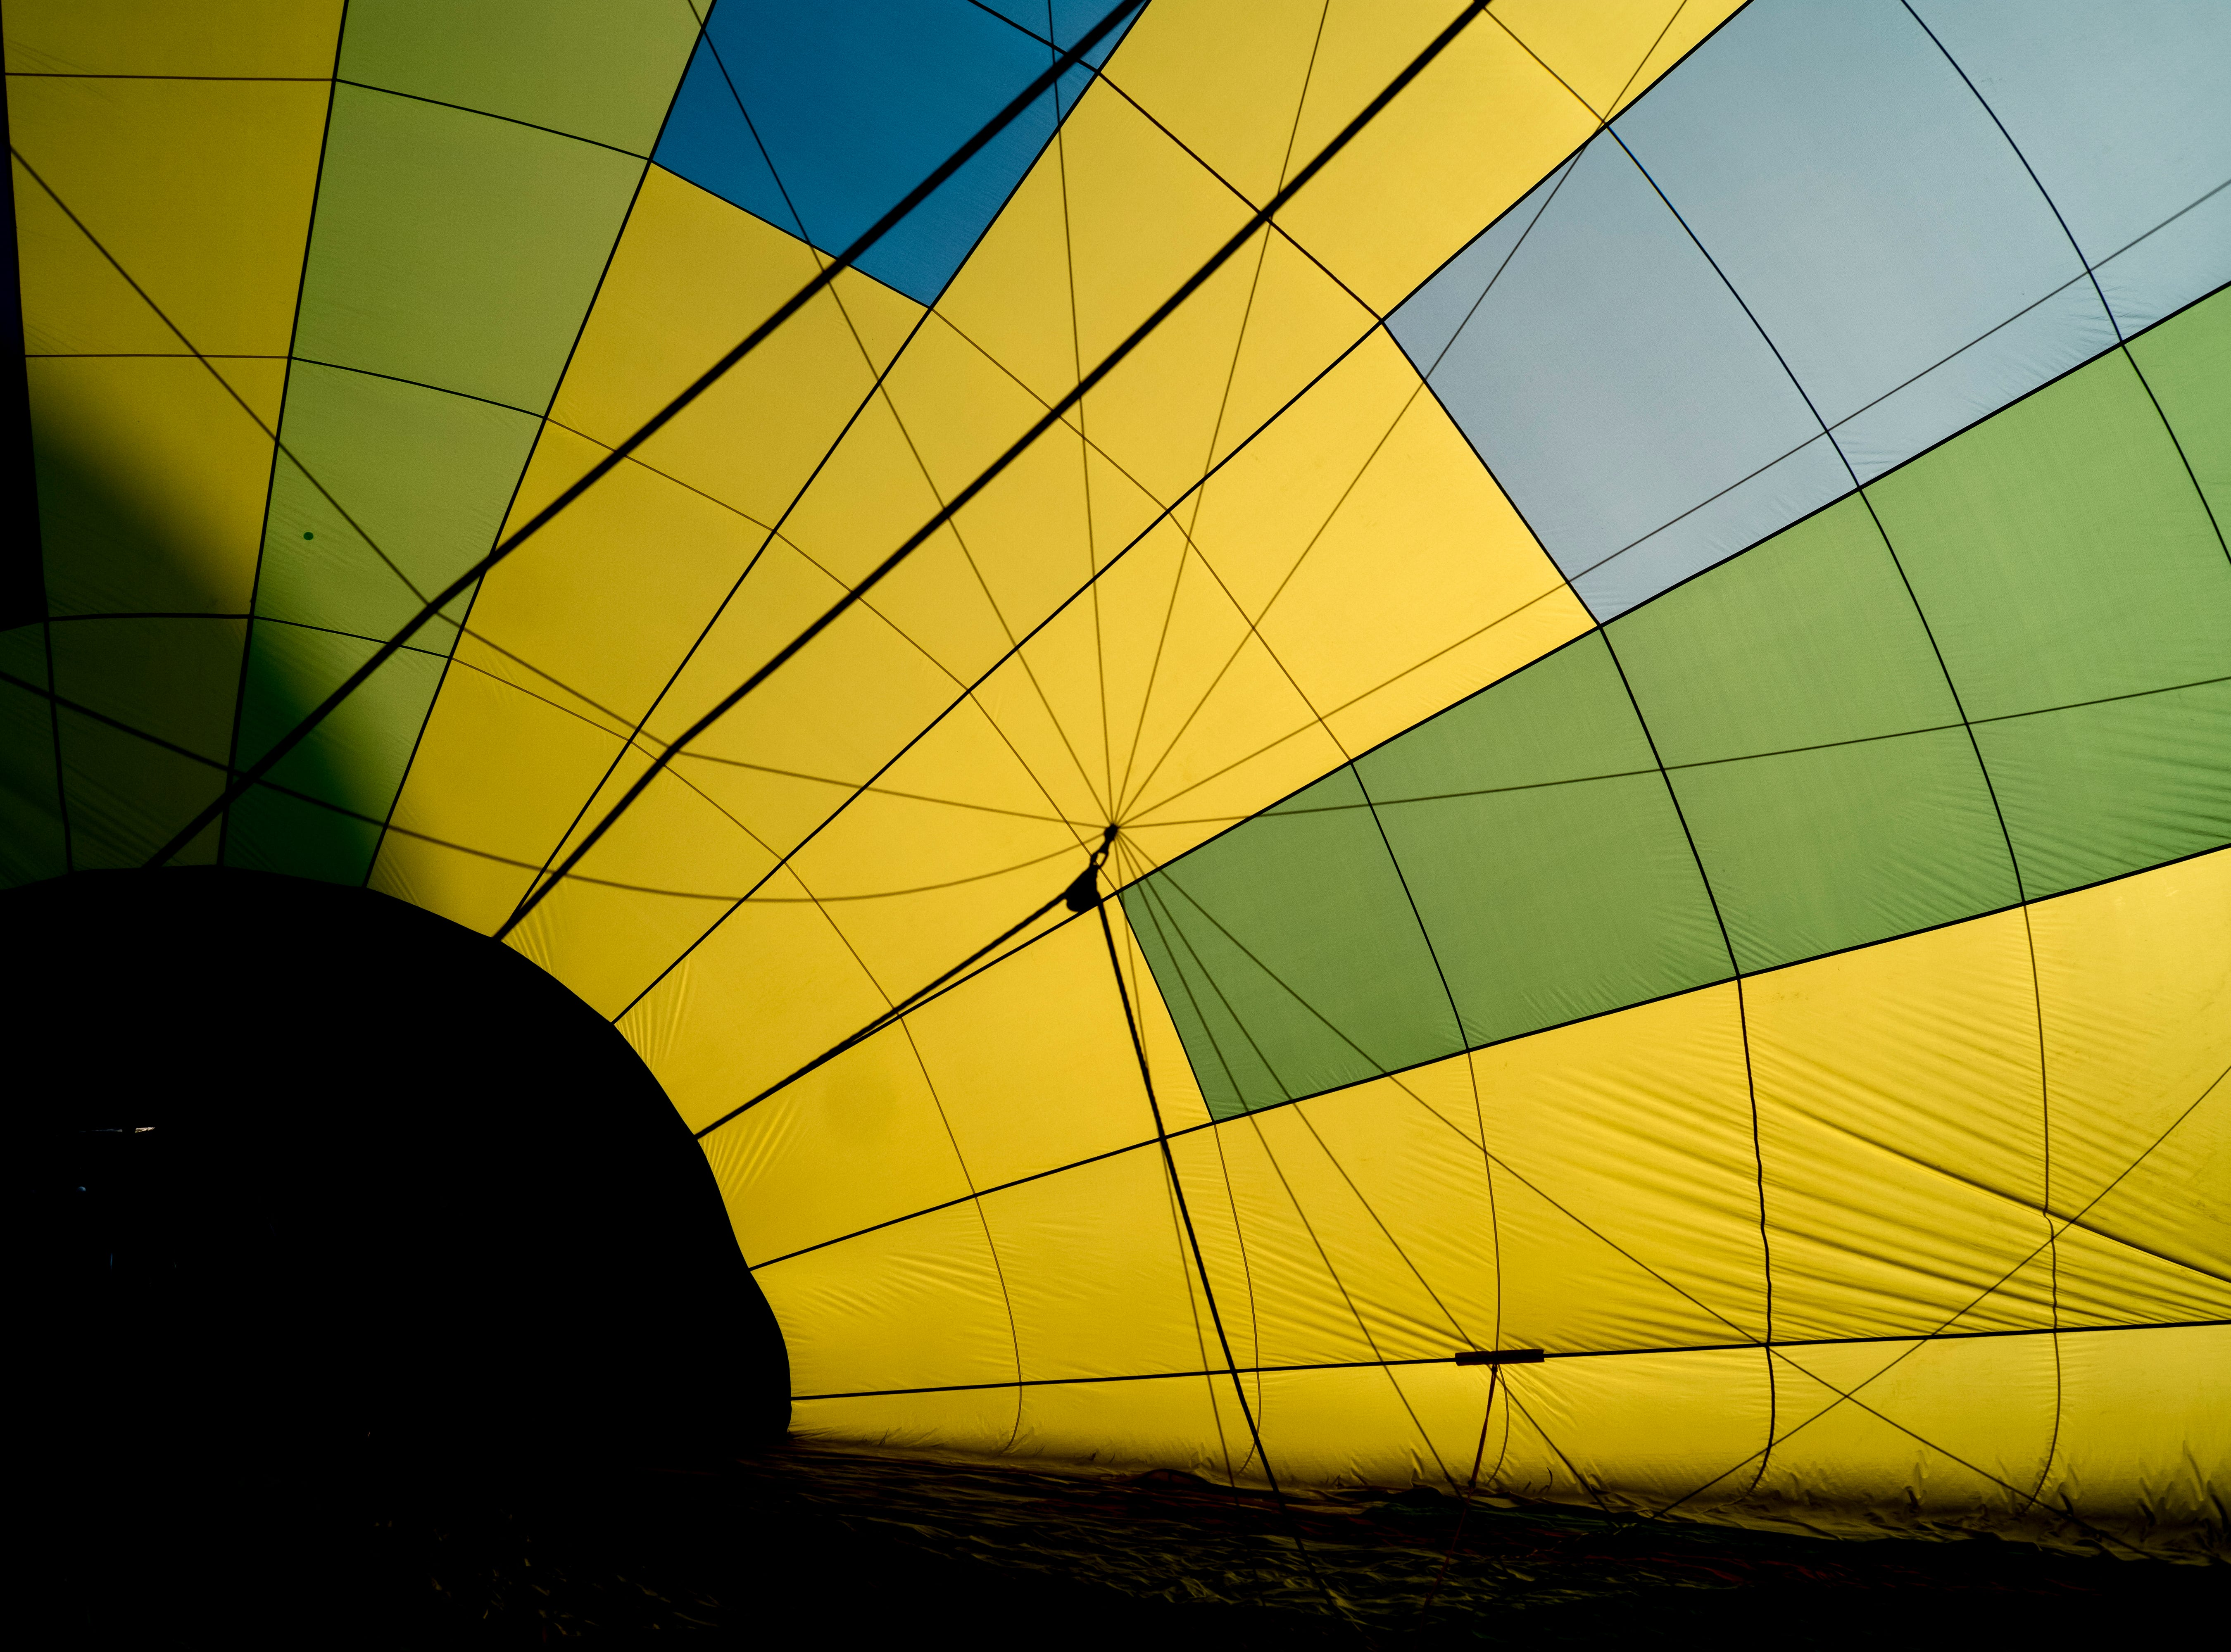 Inside an inflating hot air balloon at the second annual Smoky Mountain Balloon Festival in Townsend, Tennessee on Saturday, August 18, 2018. The festival featured several hot air balloons, food trucks, wine tasting and live entertainment.